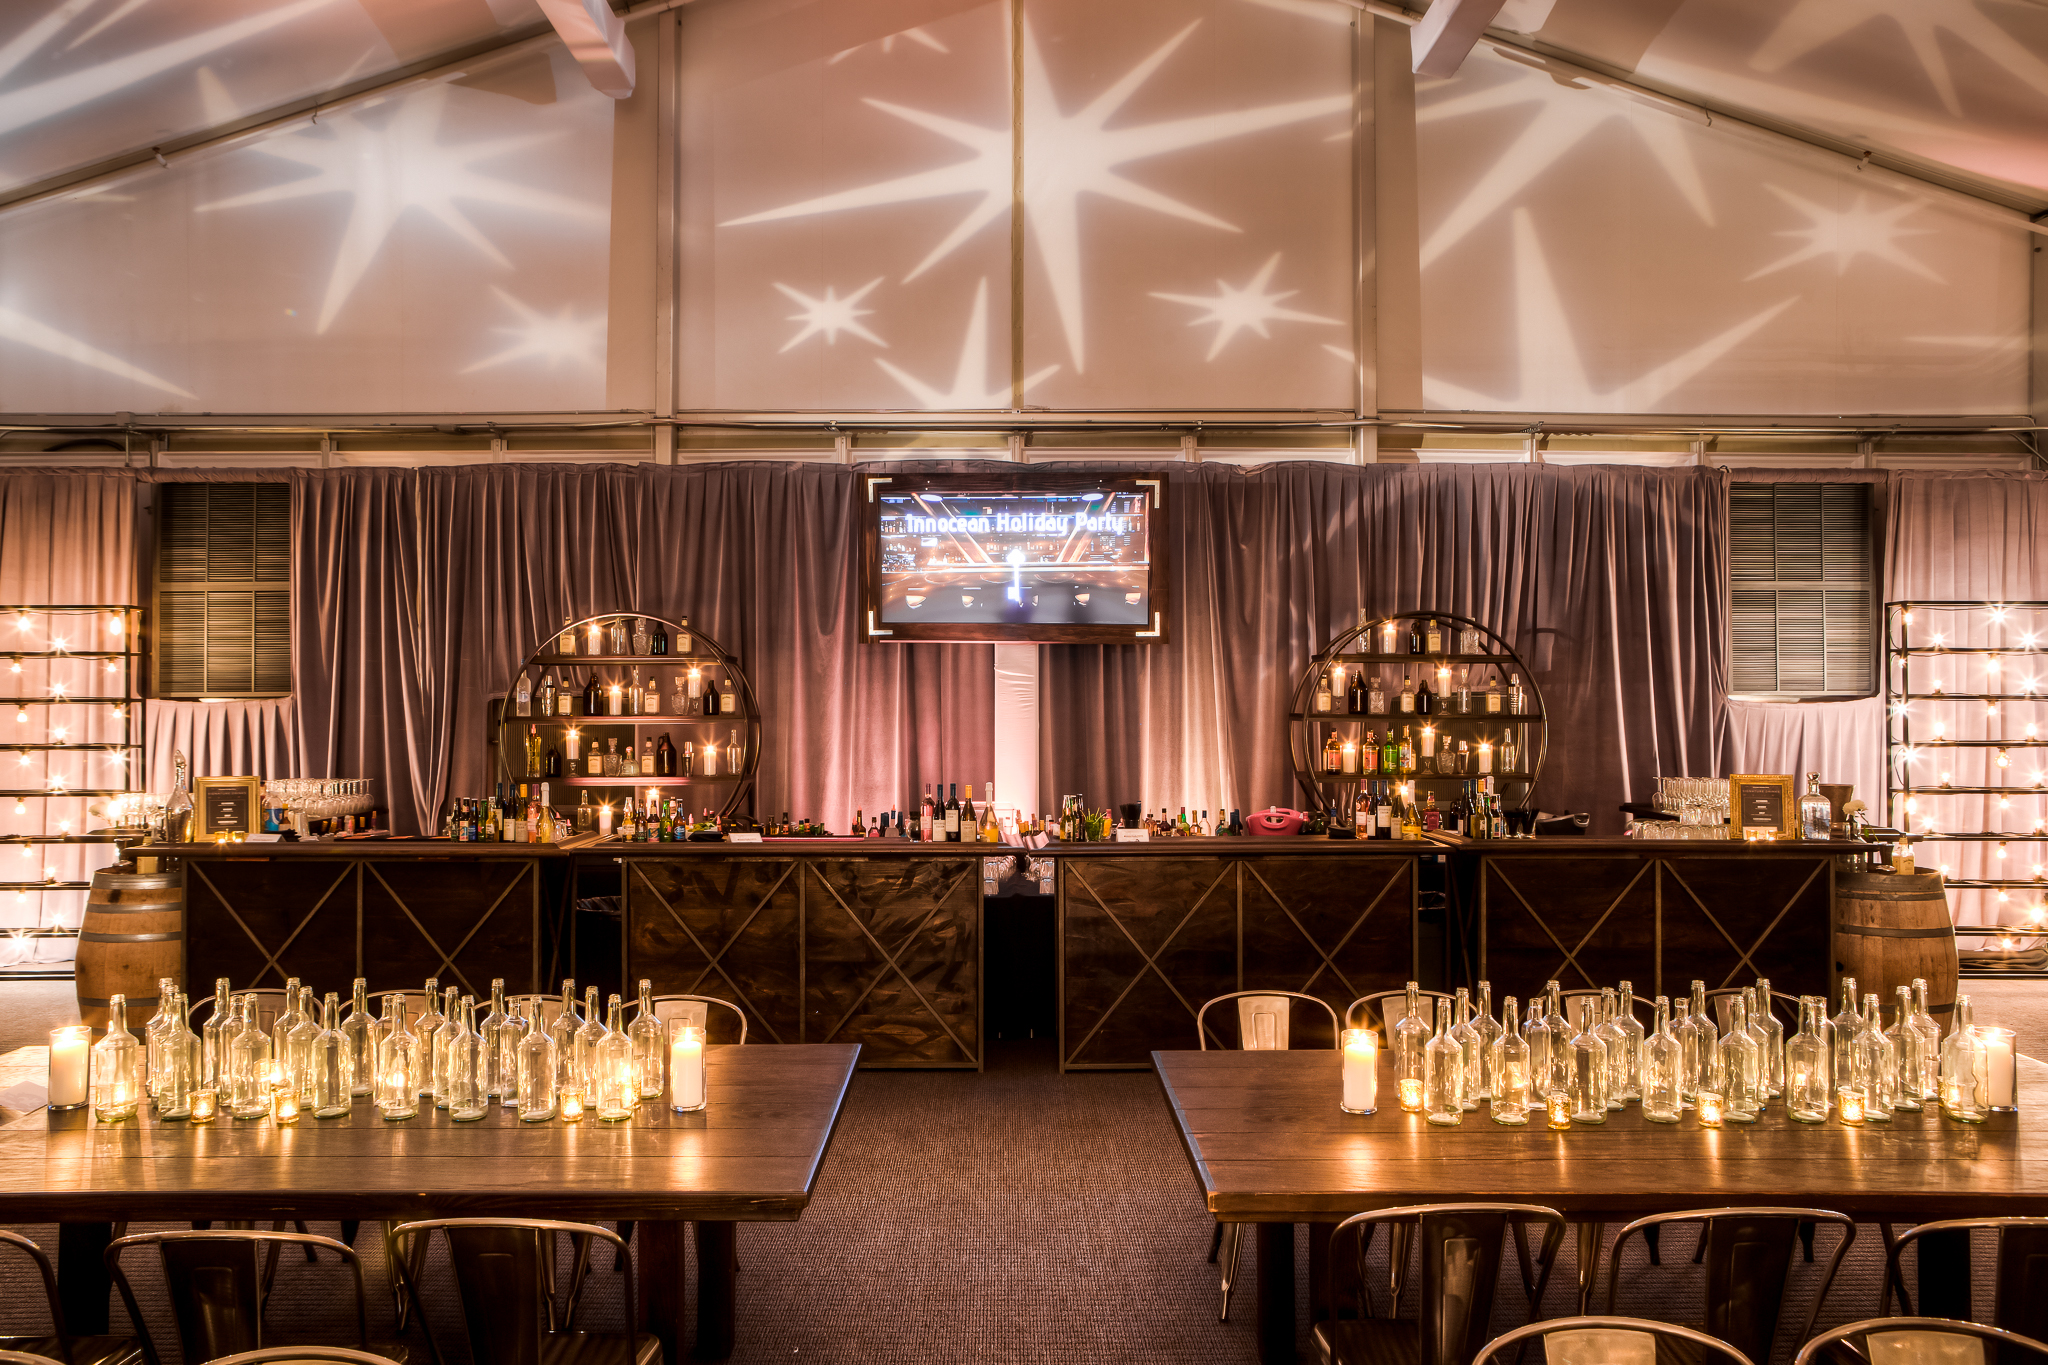 orange county corporate event planner speakeasy lit bottles on wood tables